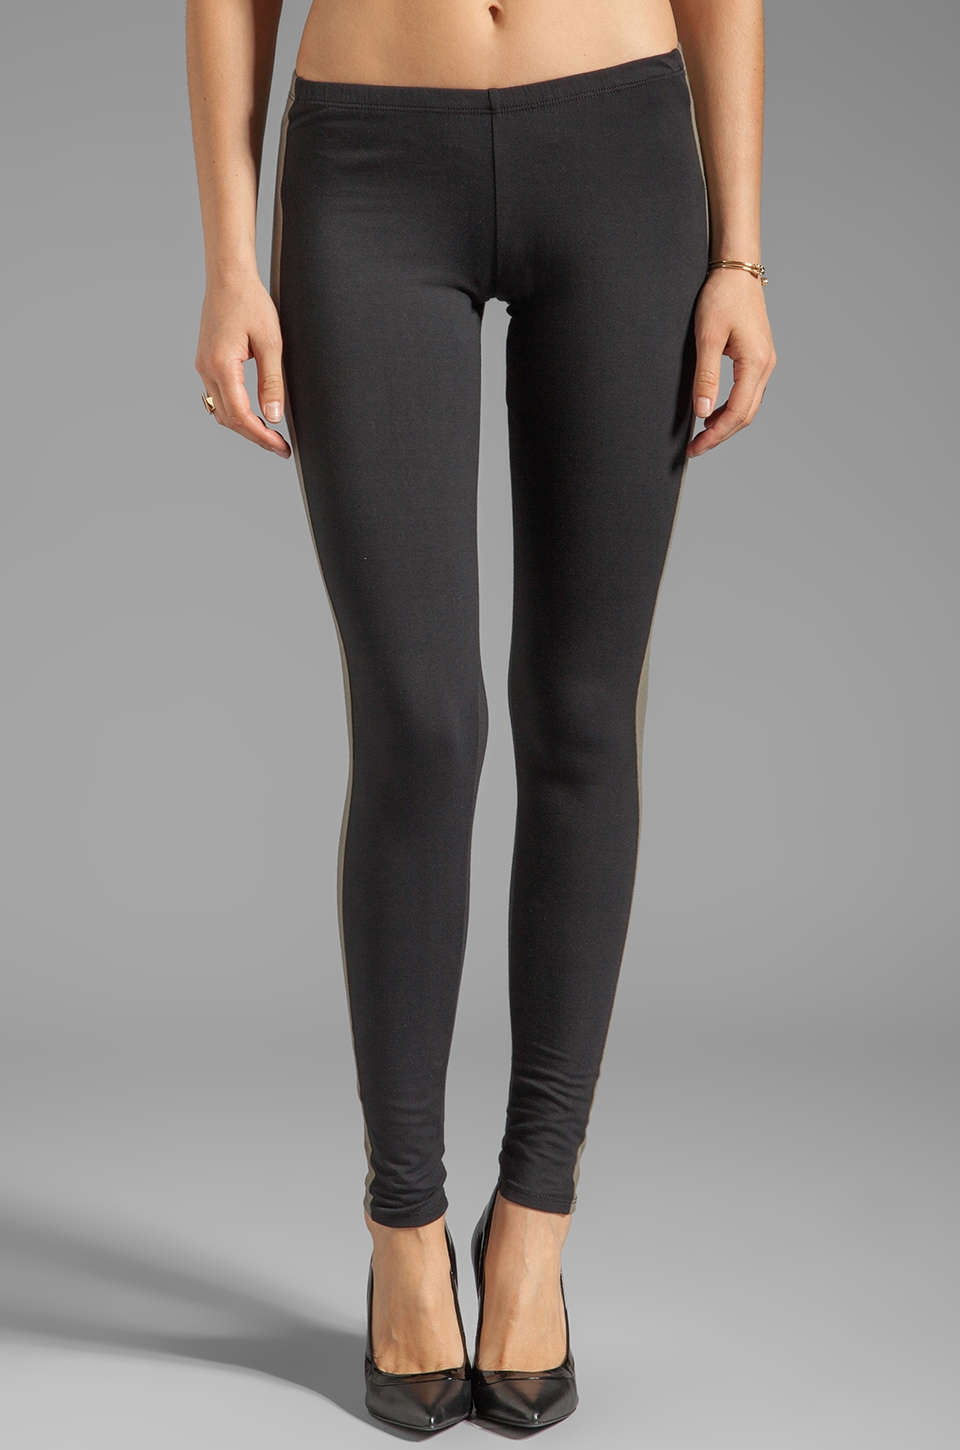 Blue Life Earn Your Stripes Legging in Military Combo